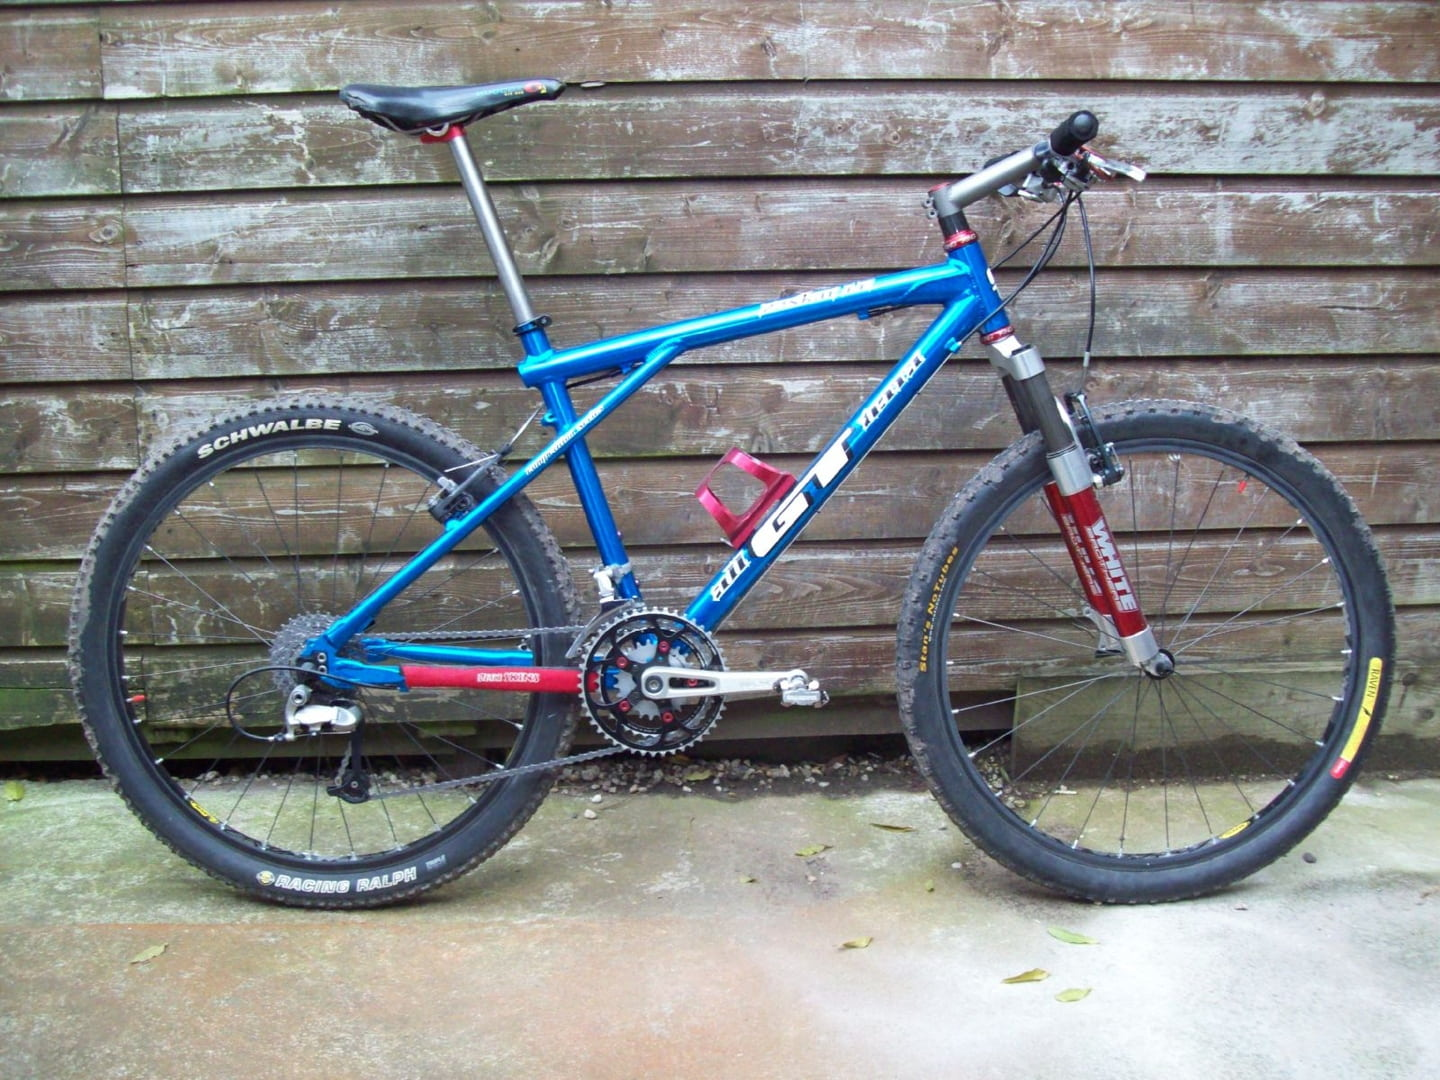 File Php 700 525 Bicycles Mtn Road Pinterest Filing Gt